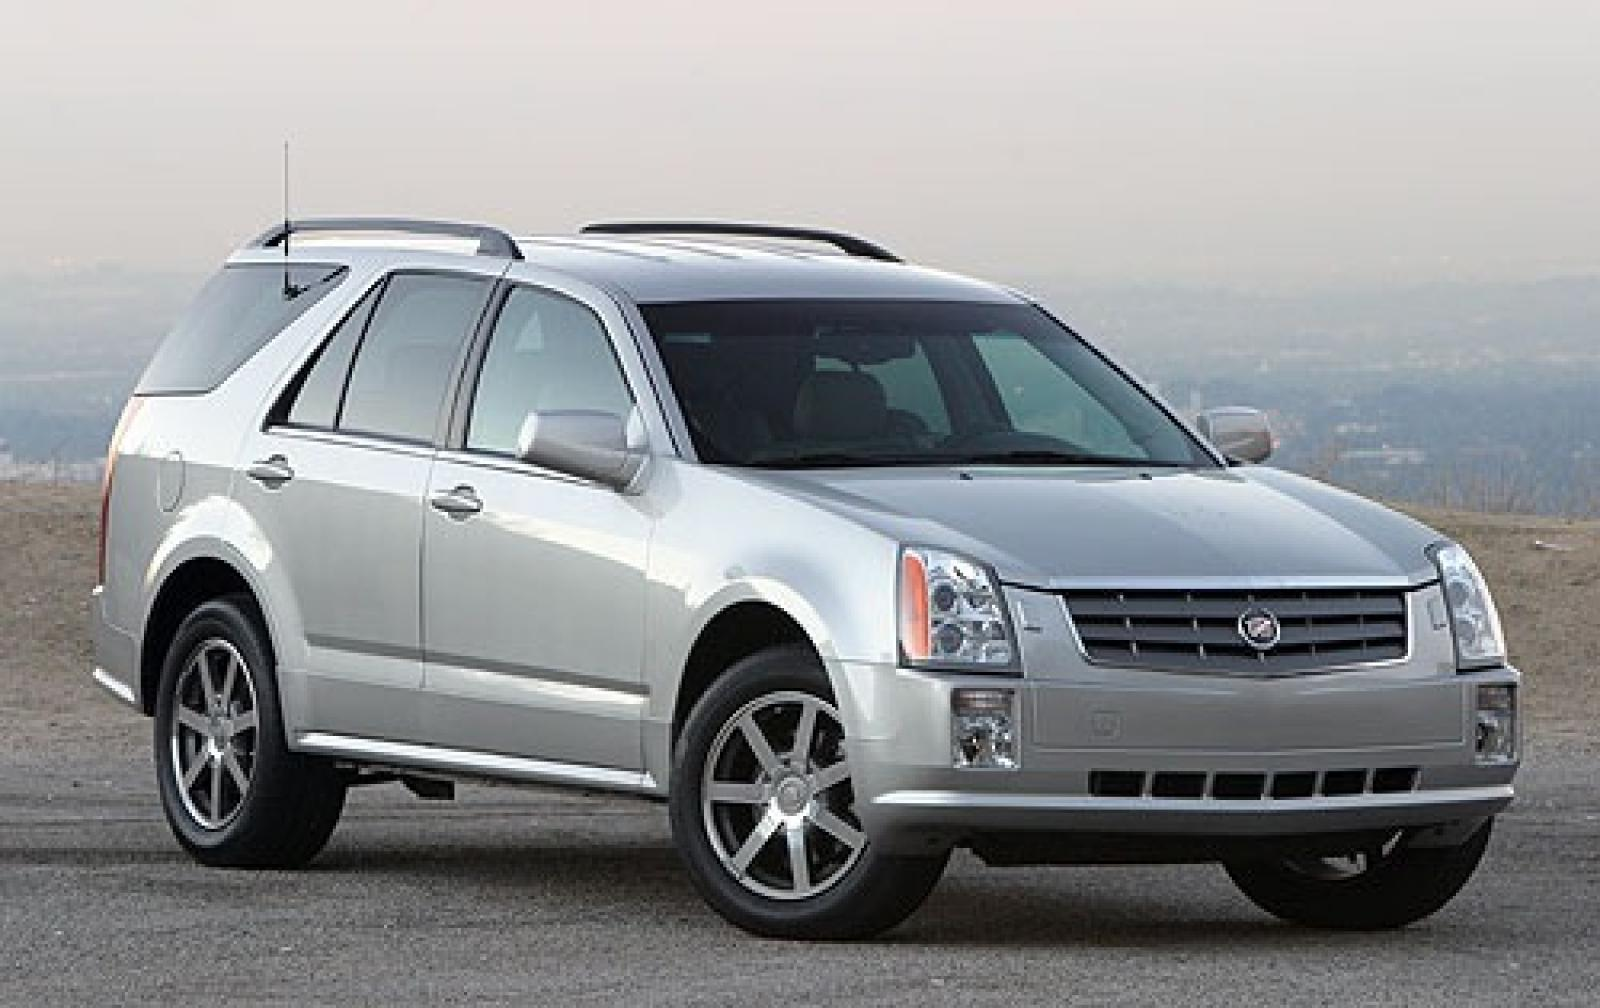 2006 cadillac srx information and photos zombiedrive. Black Bedroom Furniture Sets. Home Design Ideas